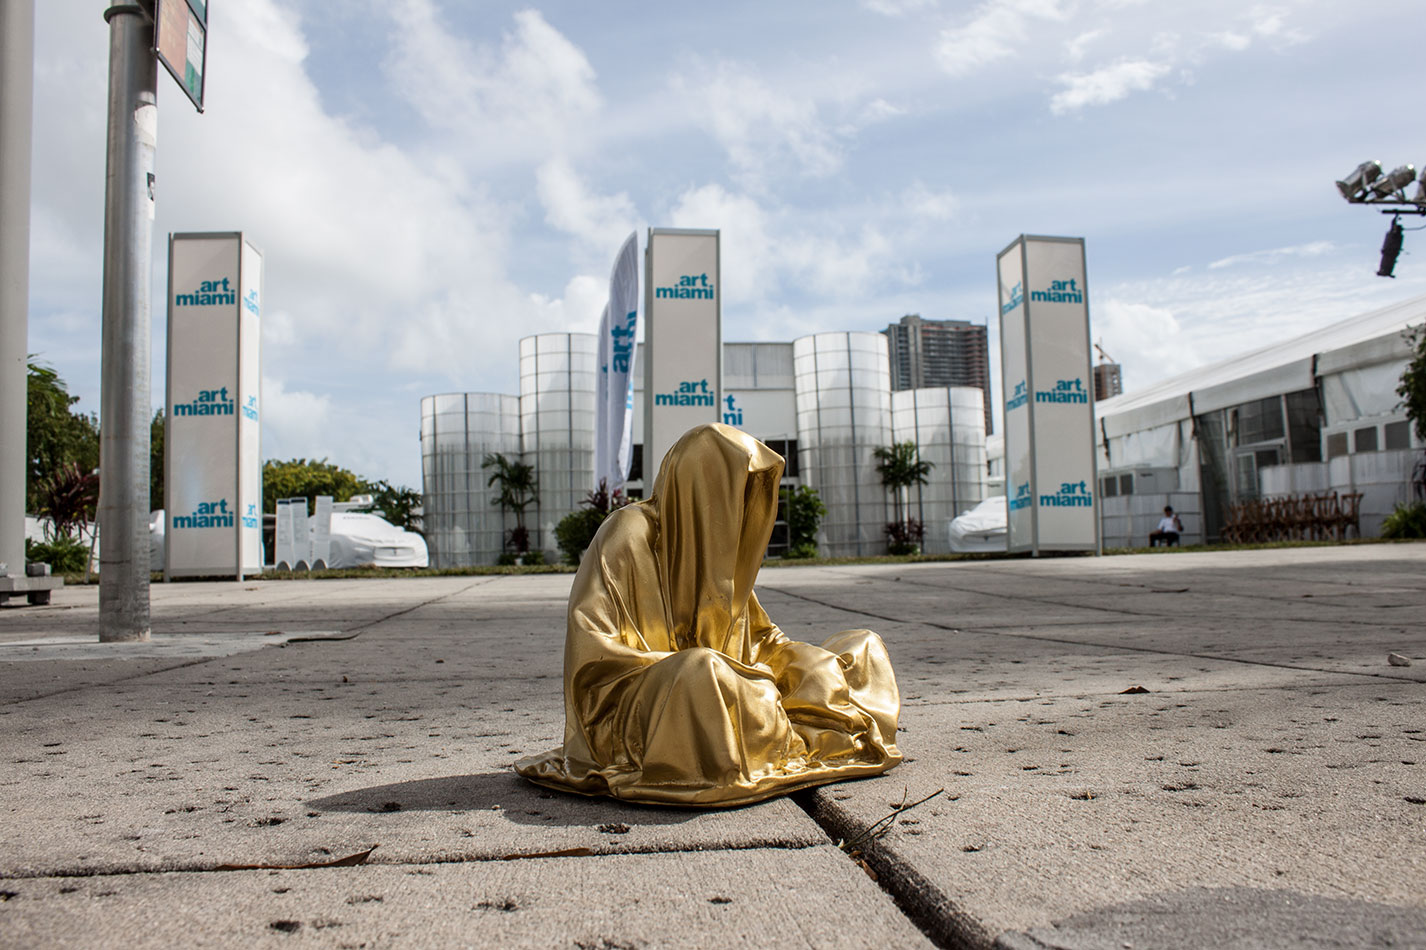 art-basel-miami-beach-fair-usa-florida-guardians-of-time-manfred-kili-kielnhofer-contemporary-fine-art-modern-arts-design-antiques-sculpture-6258